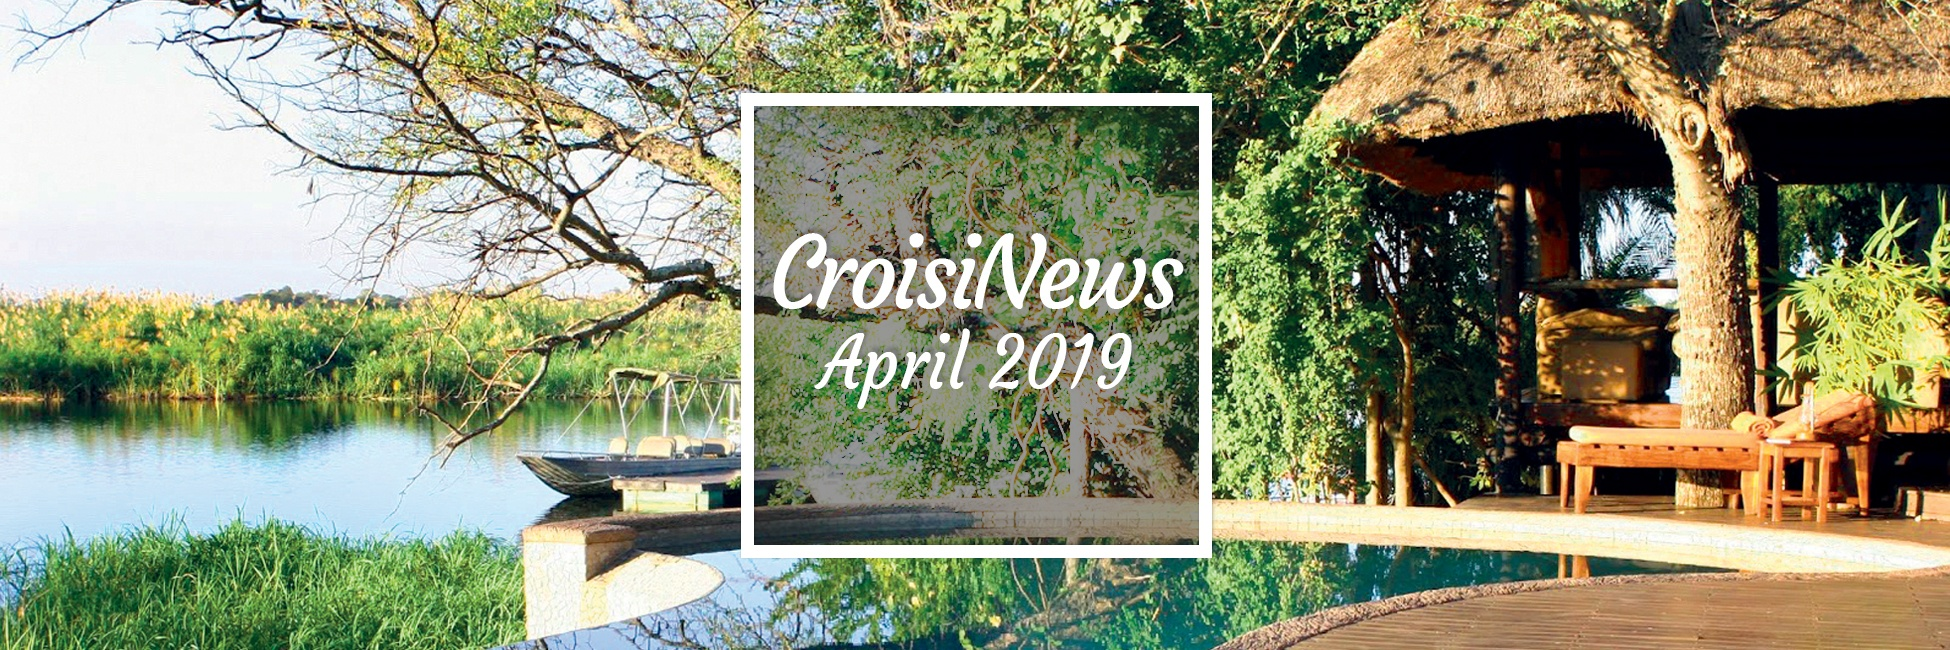 news about River cruising